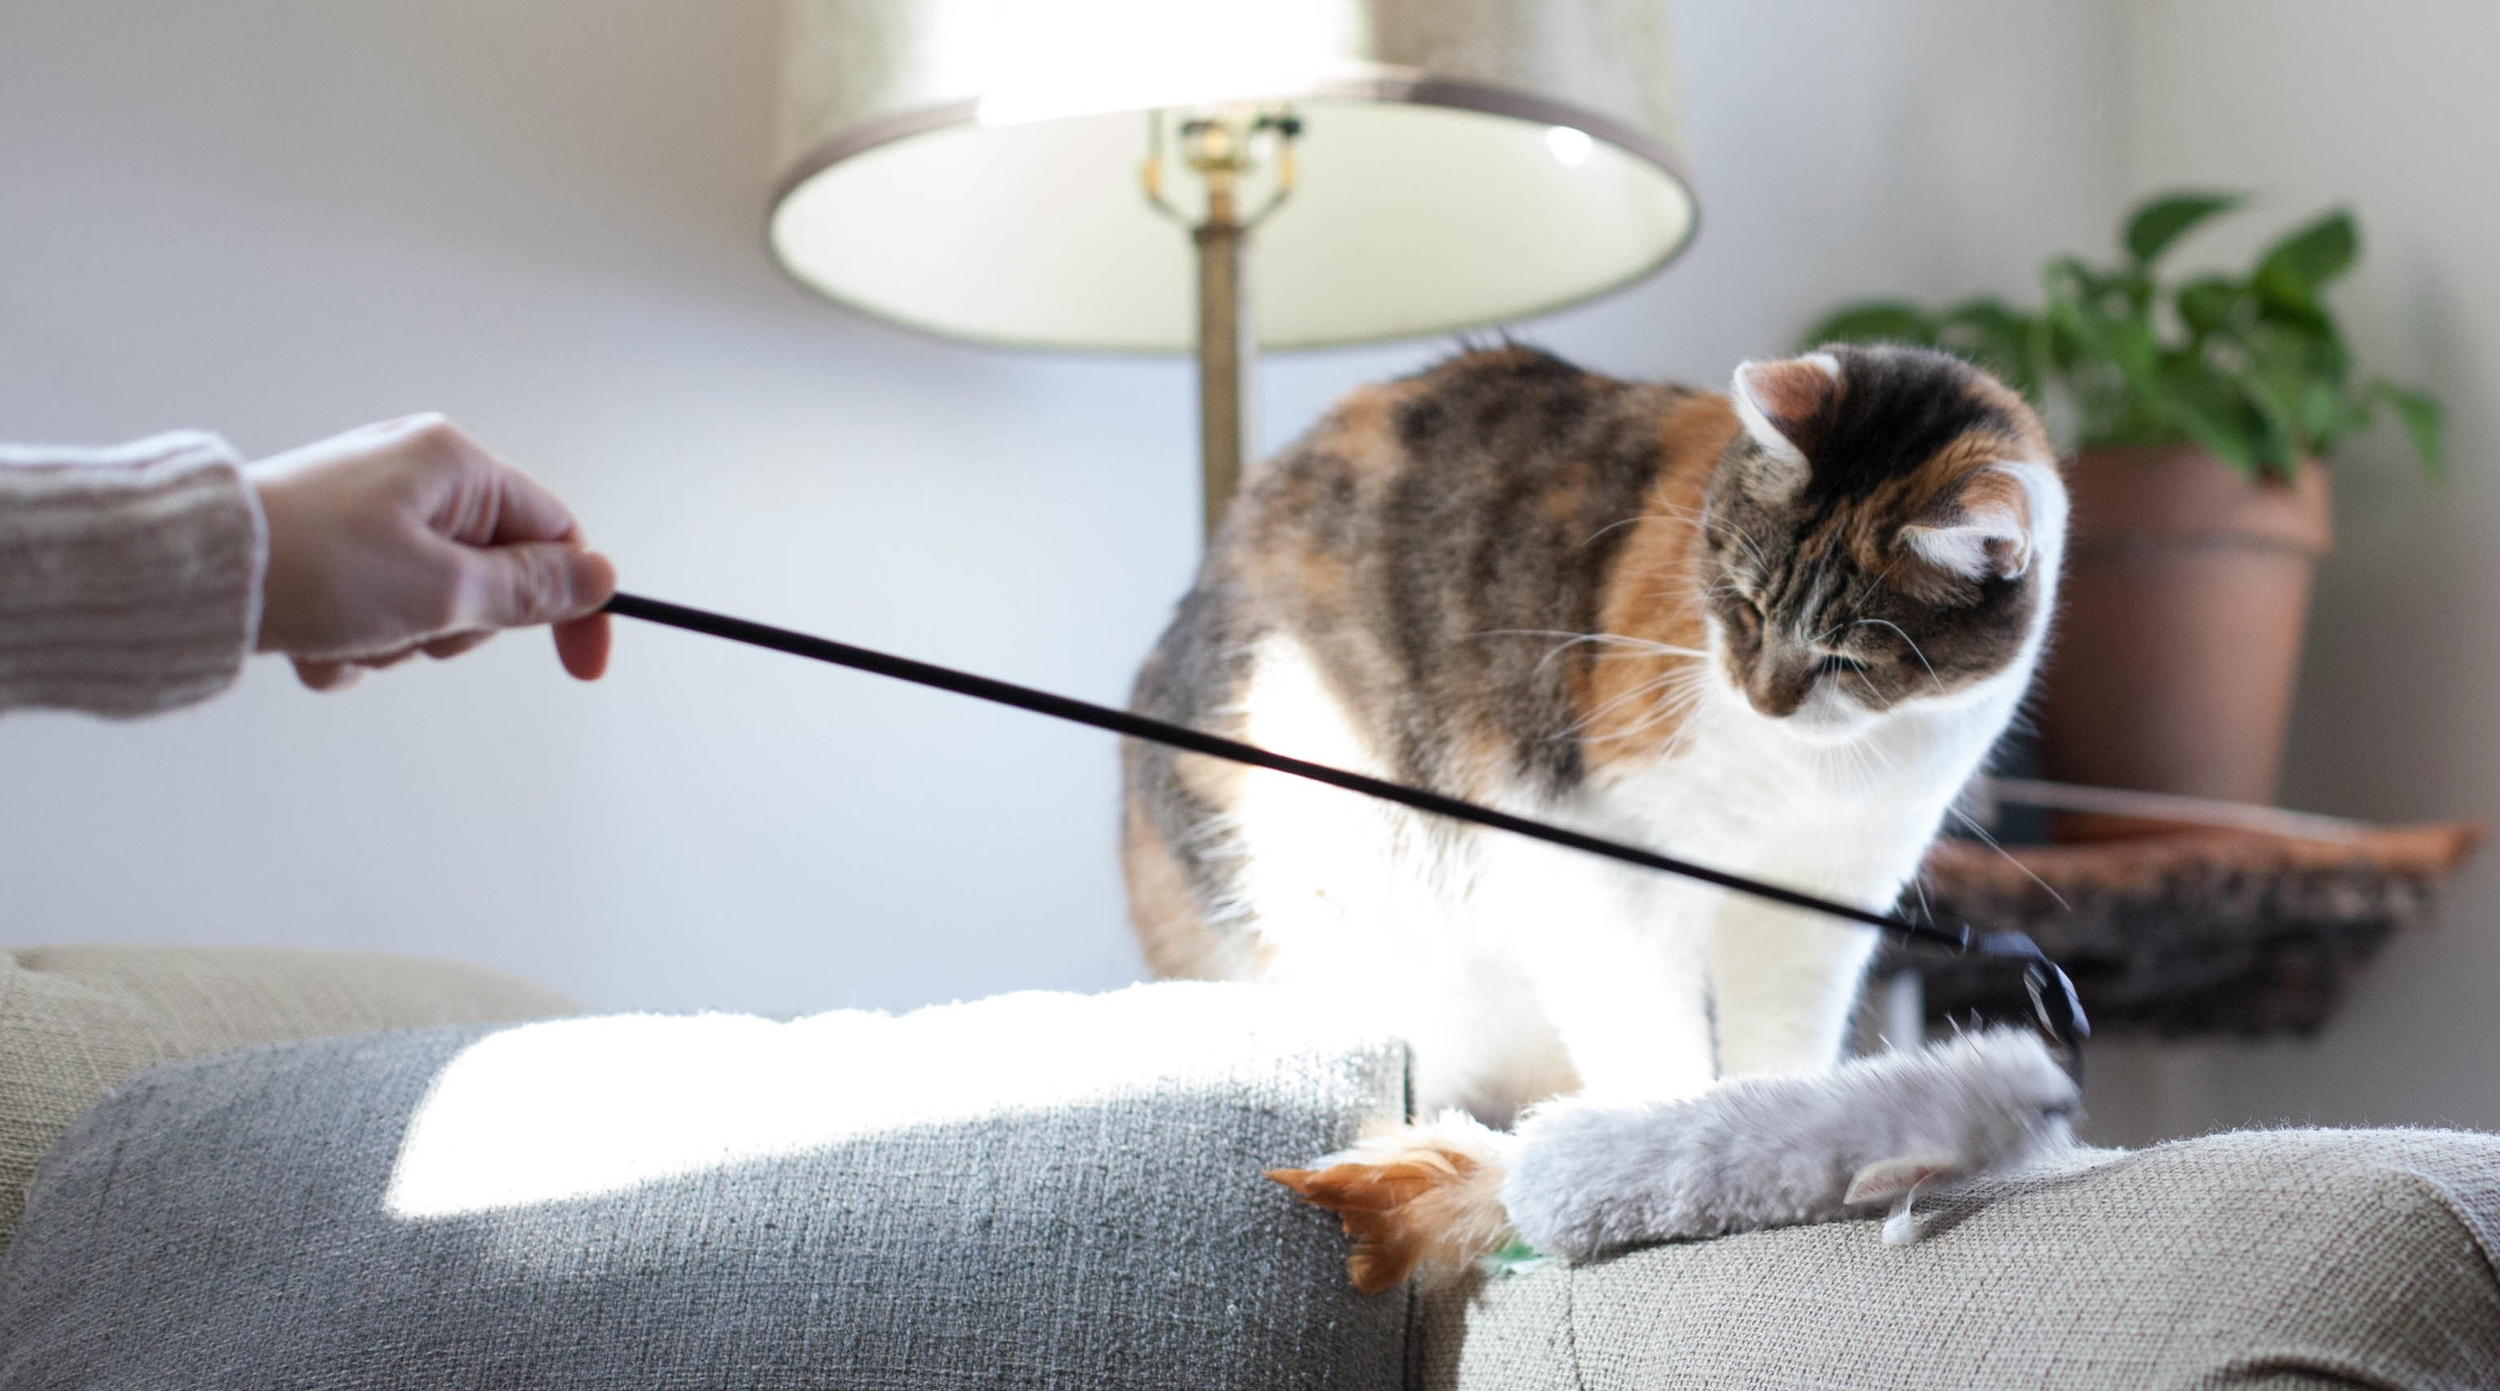 Cassie, one of our foster cats, loves pets and playtime—perfectly suited to life at home!